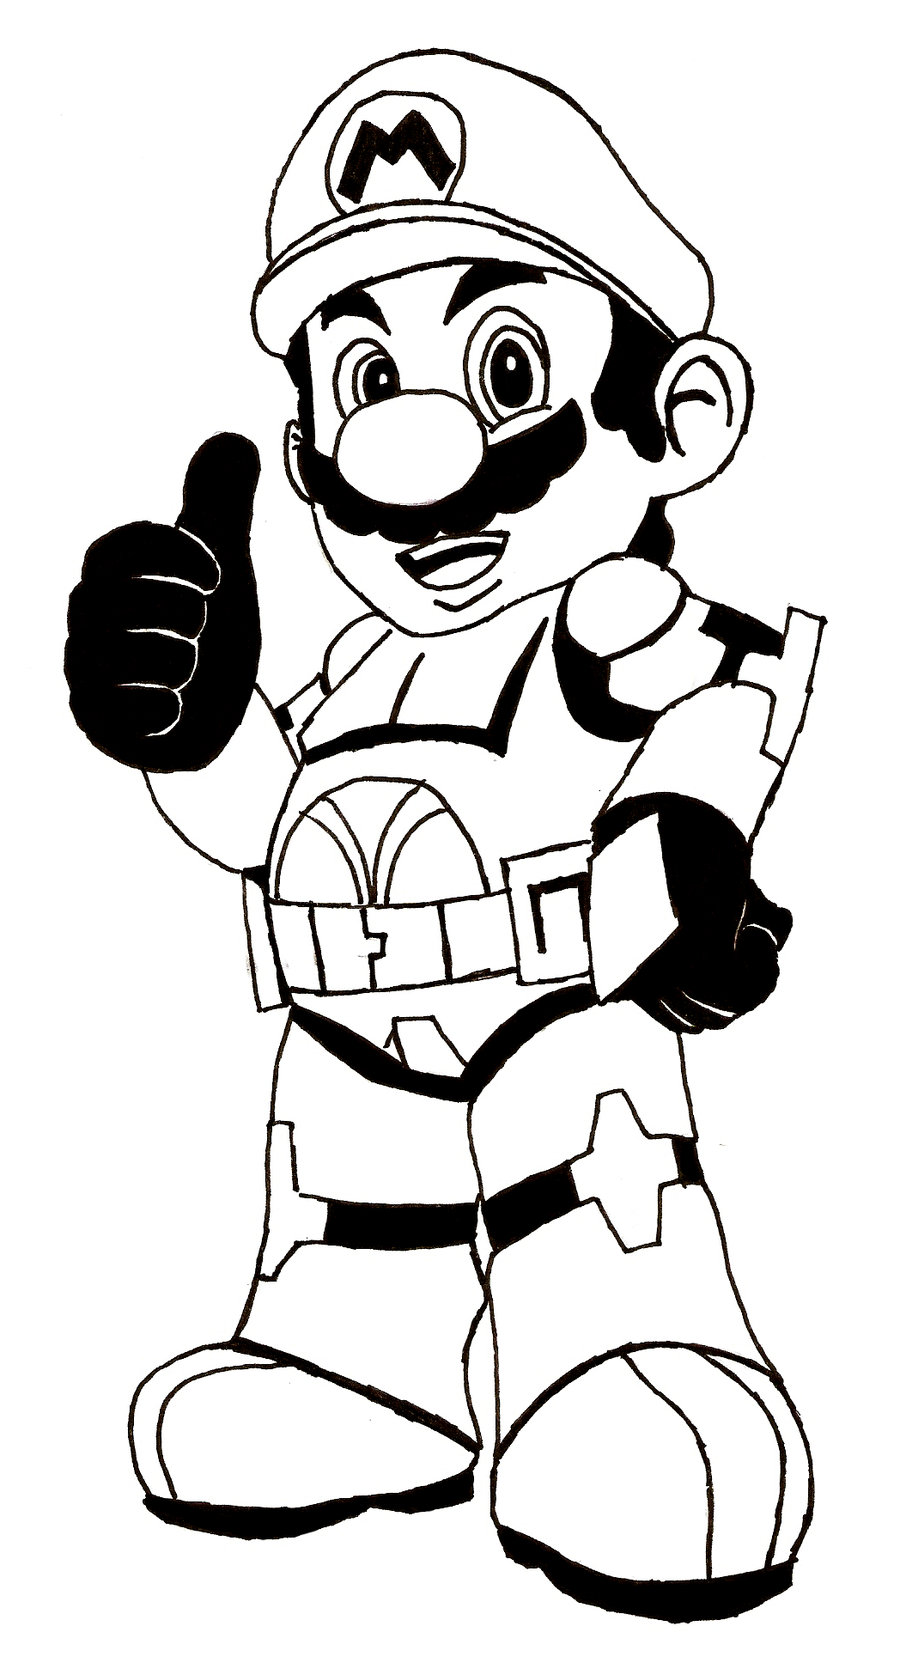 Colouring sheets to colour - Free Mario Coloring Pages To Print